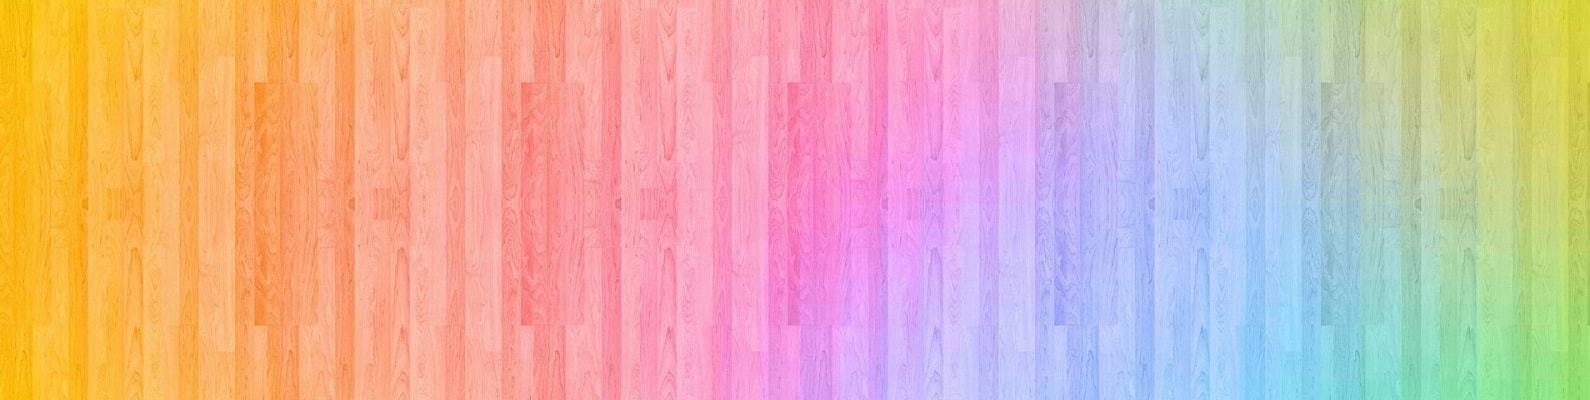 colorful, colors, wood, abstract